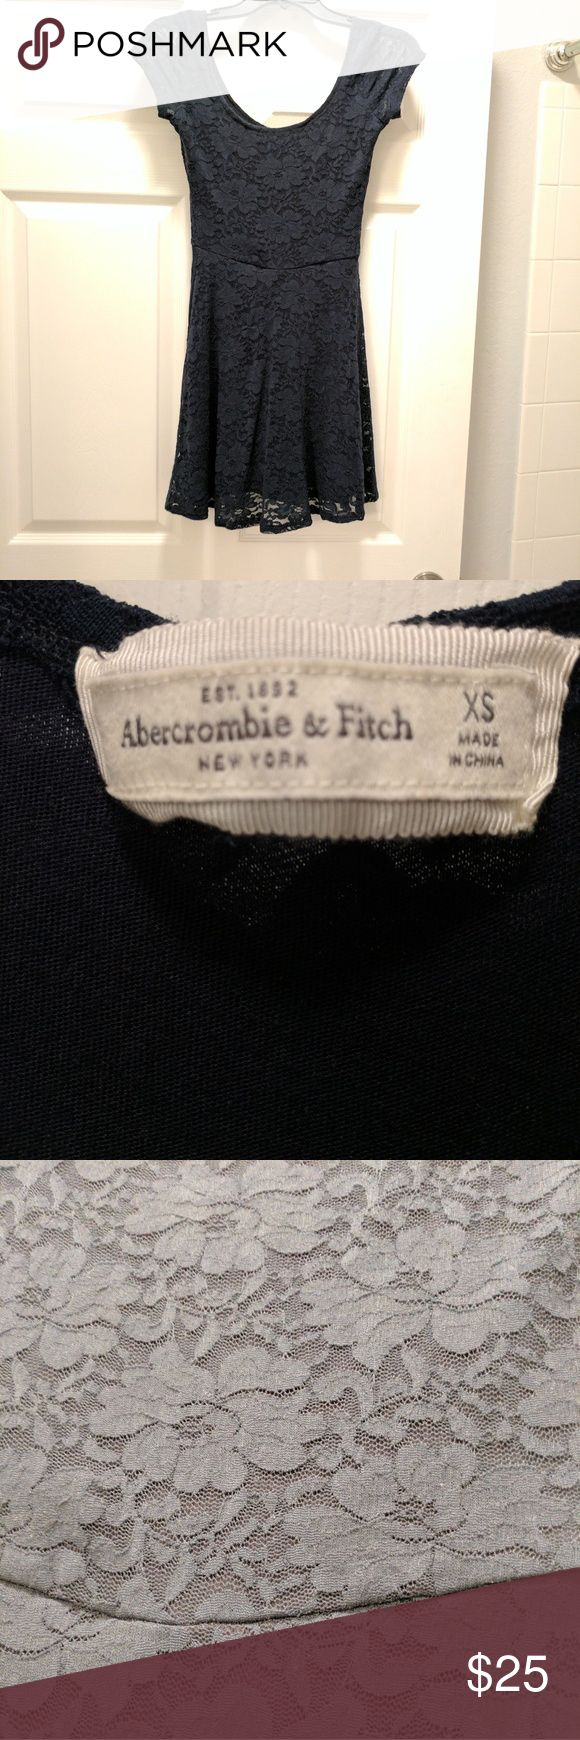 Navy blue lace babydoll Abercrombie dress Great condition. Worn once. Abercrombie & Fitch Dresses Mini